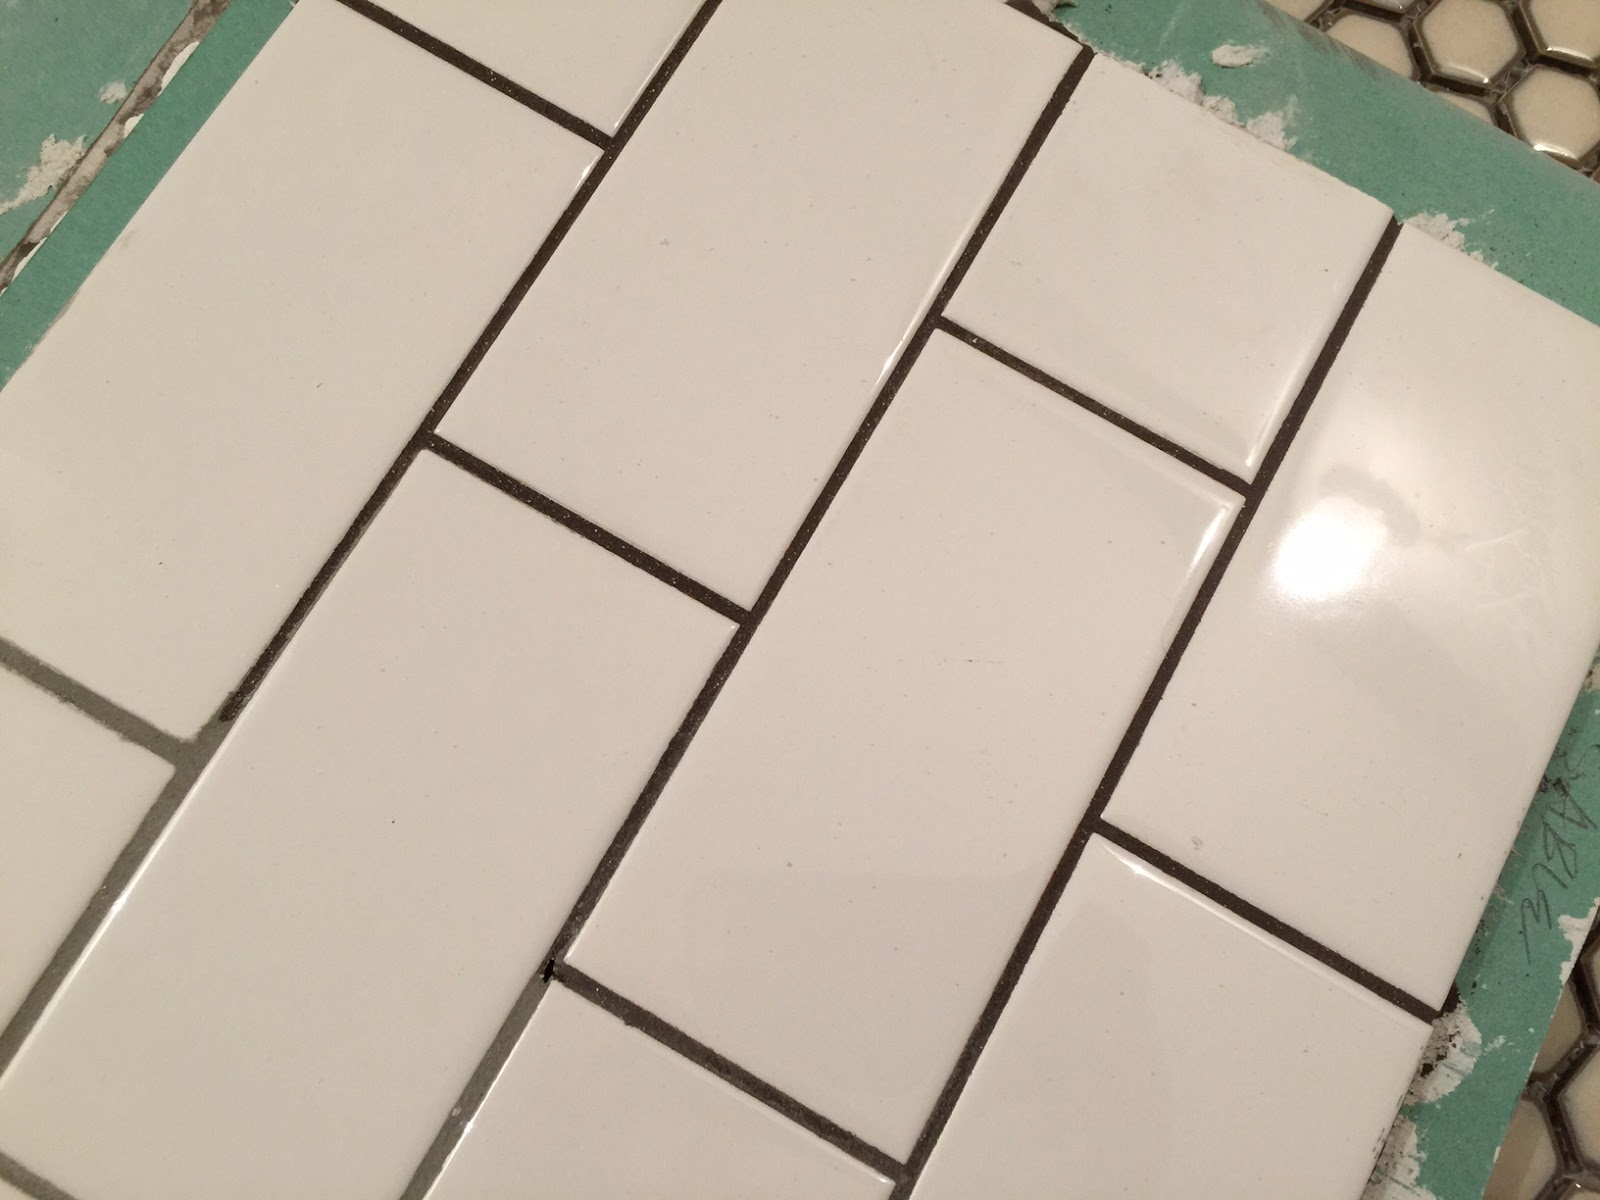 Can you change the color of grout - Of Cats And Cardstock